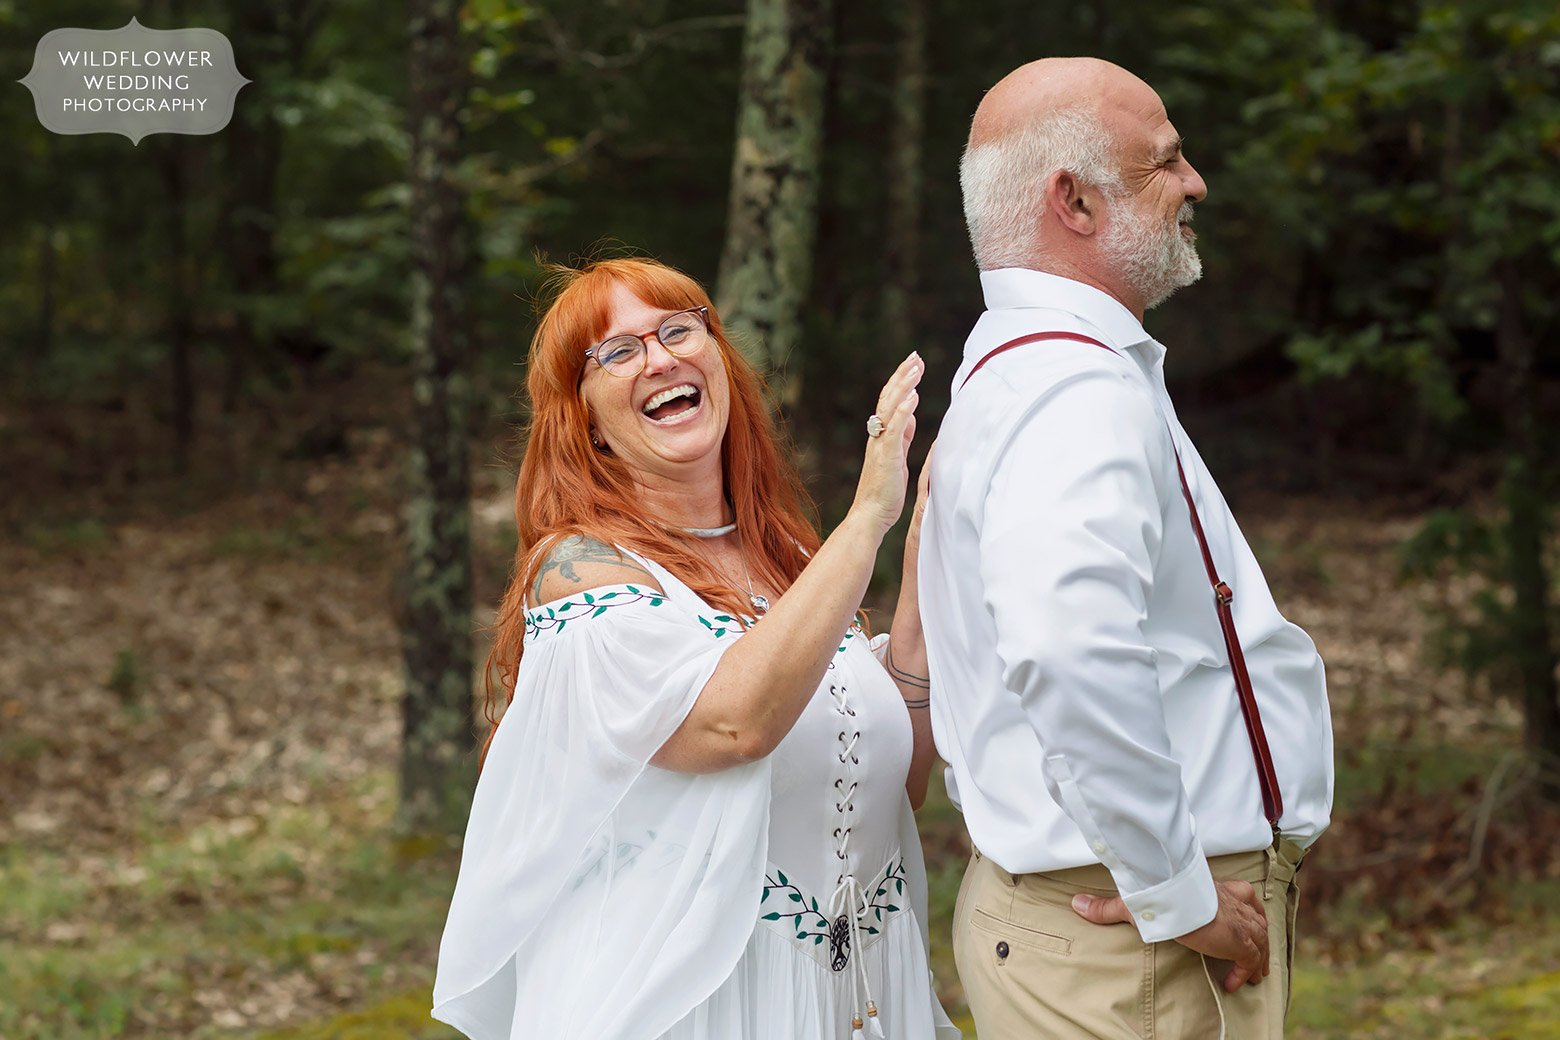 Bride taps groom on back before their first look in southern Missouri.